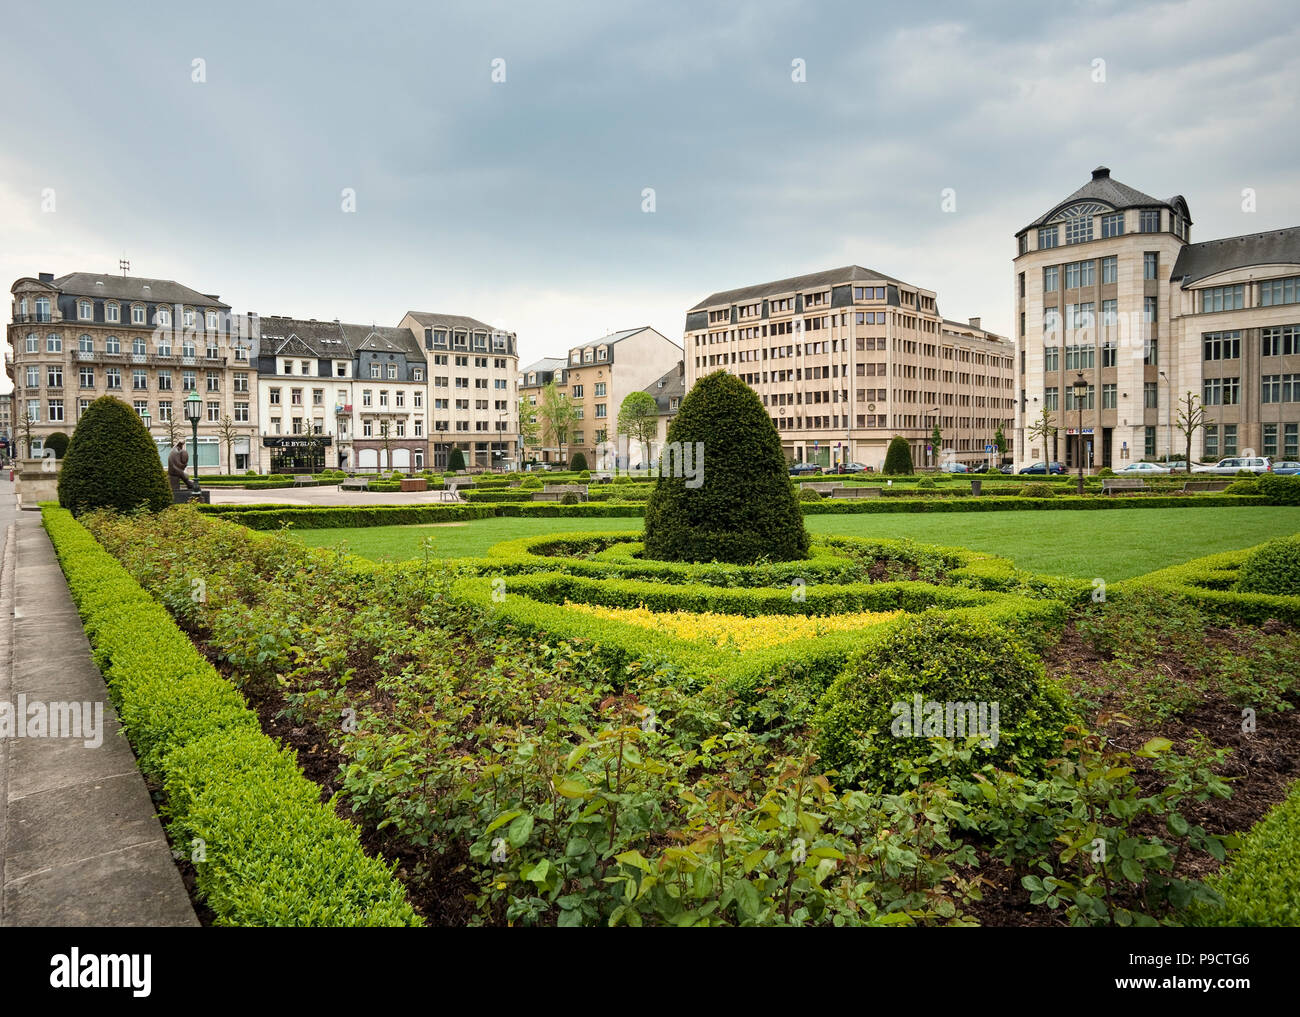 Place des Martyrs, Luxembourg City, Luxembourg, Europe - Stock Image